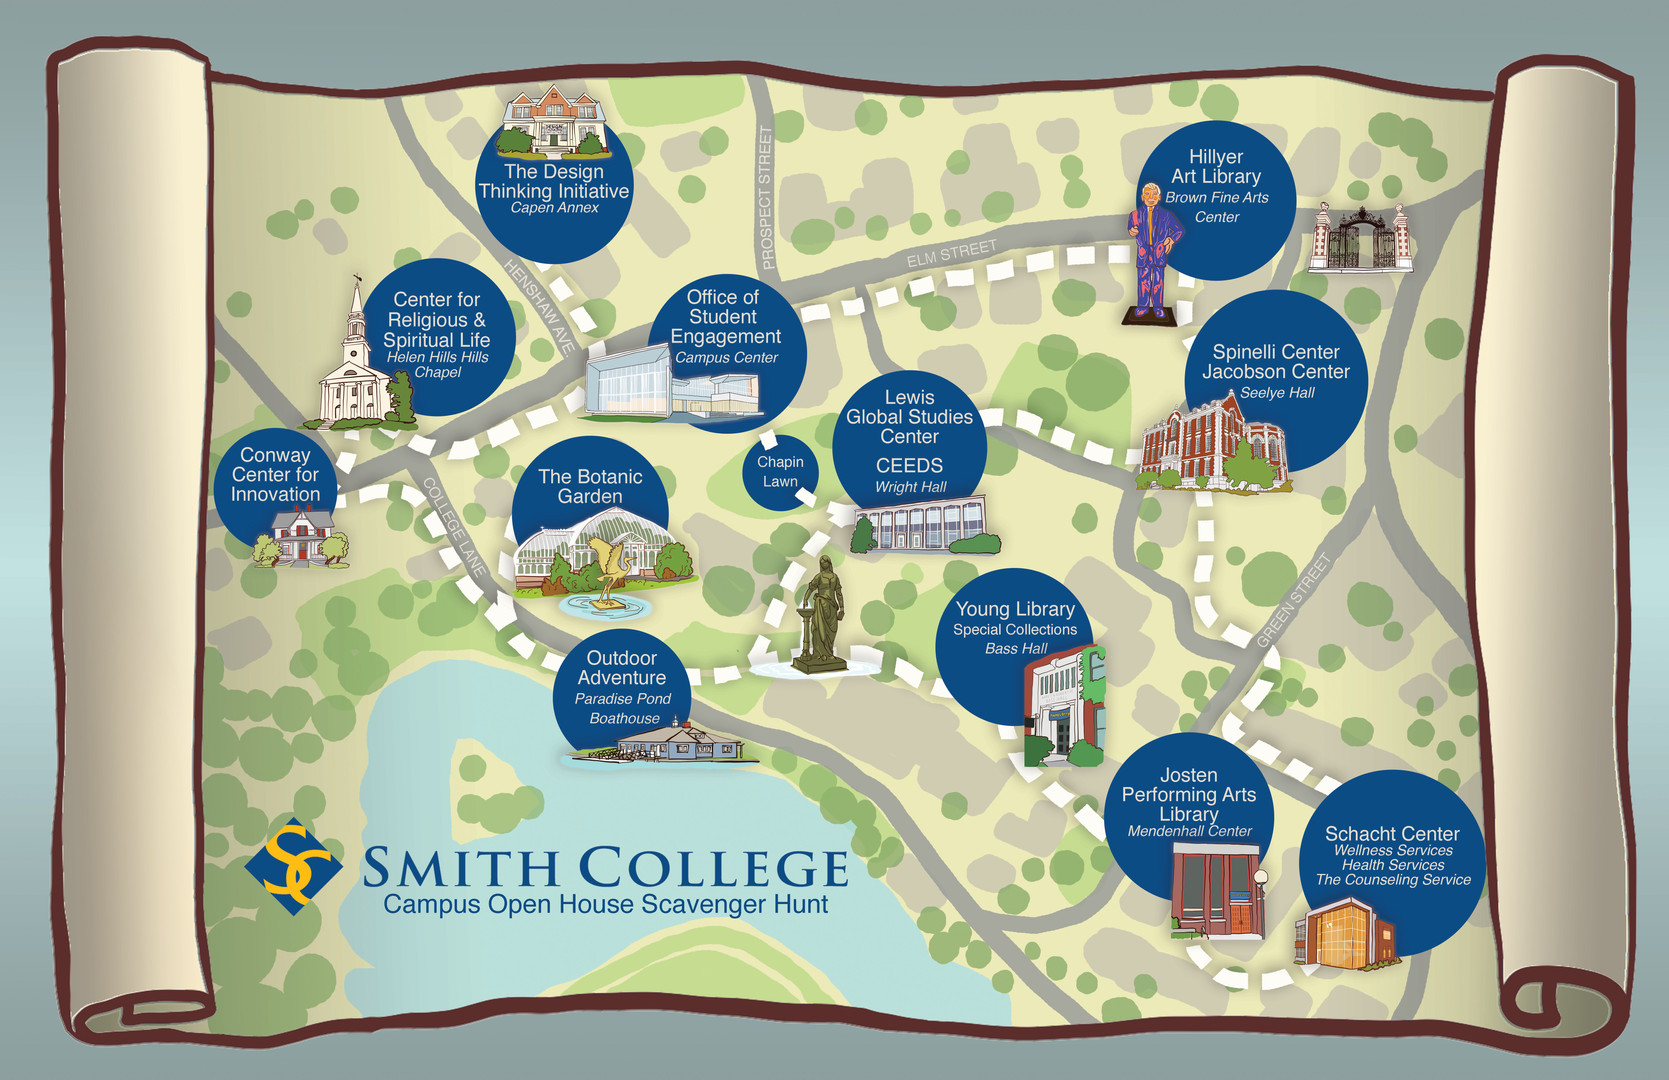 Smith College Scavenger Hunt